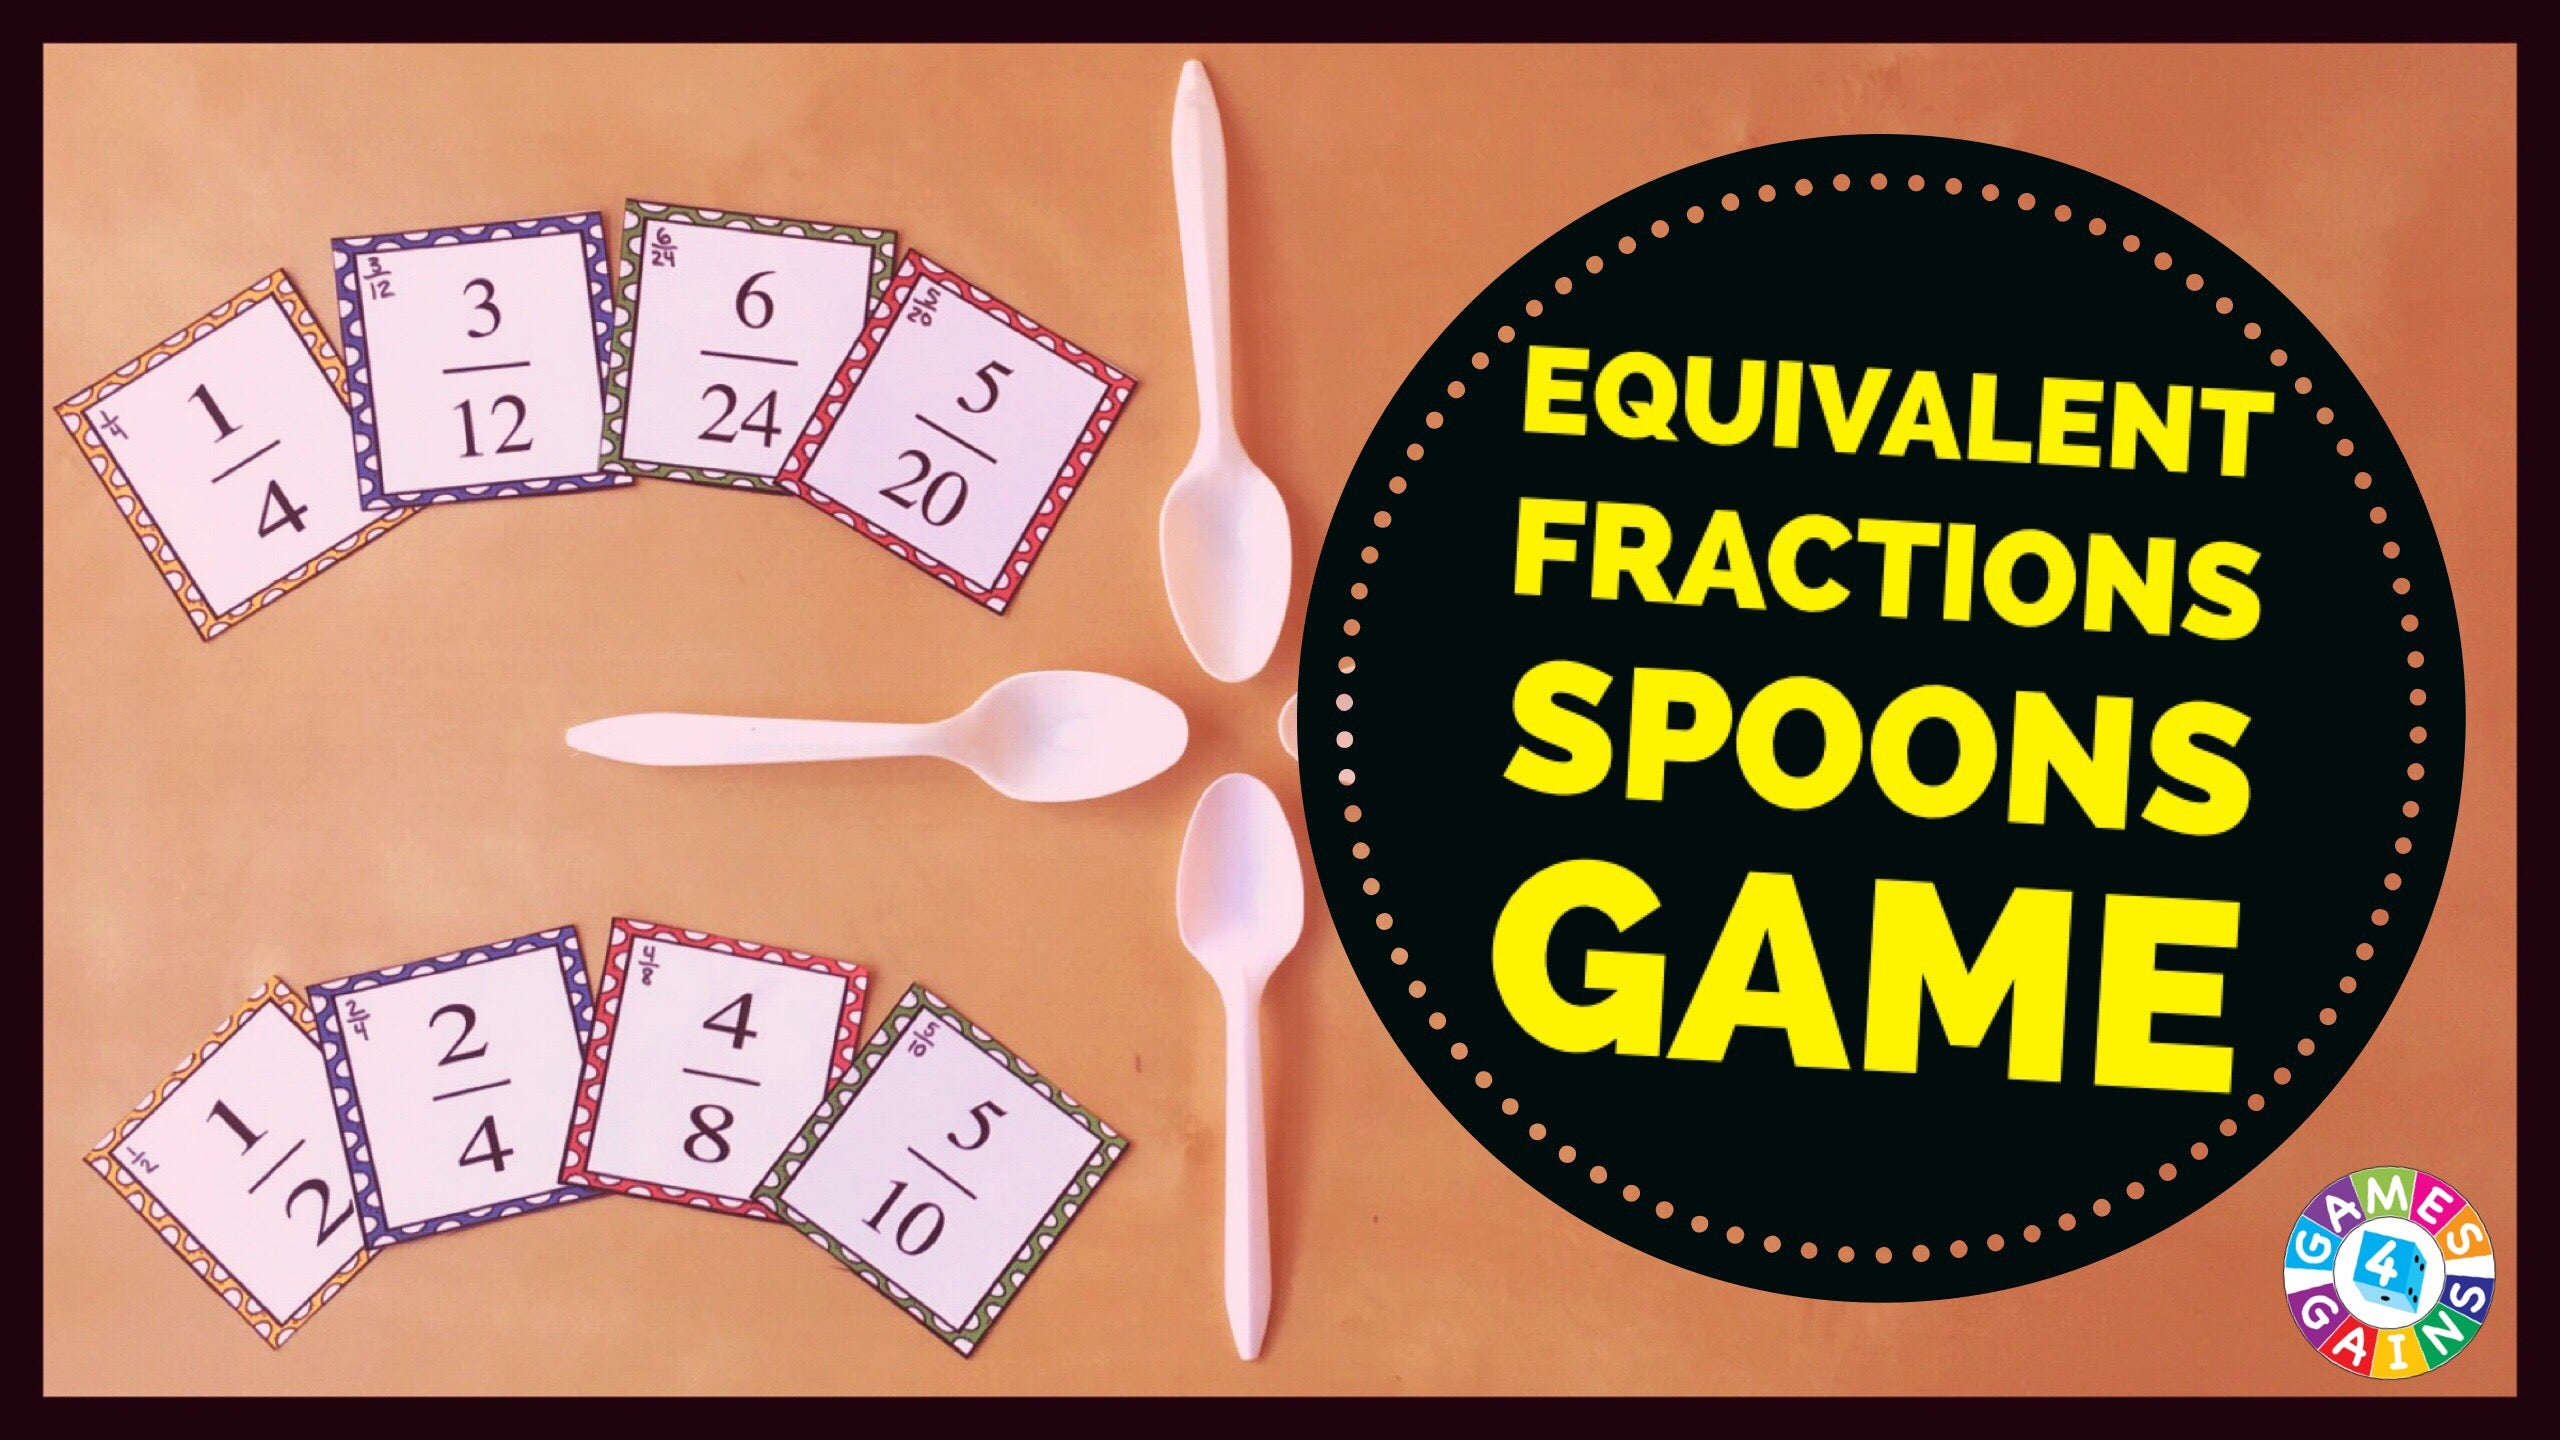 It's just a photo of Simplifying Fractions Game Printable with regard to 7th grade